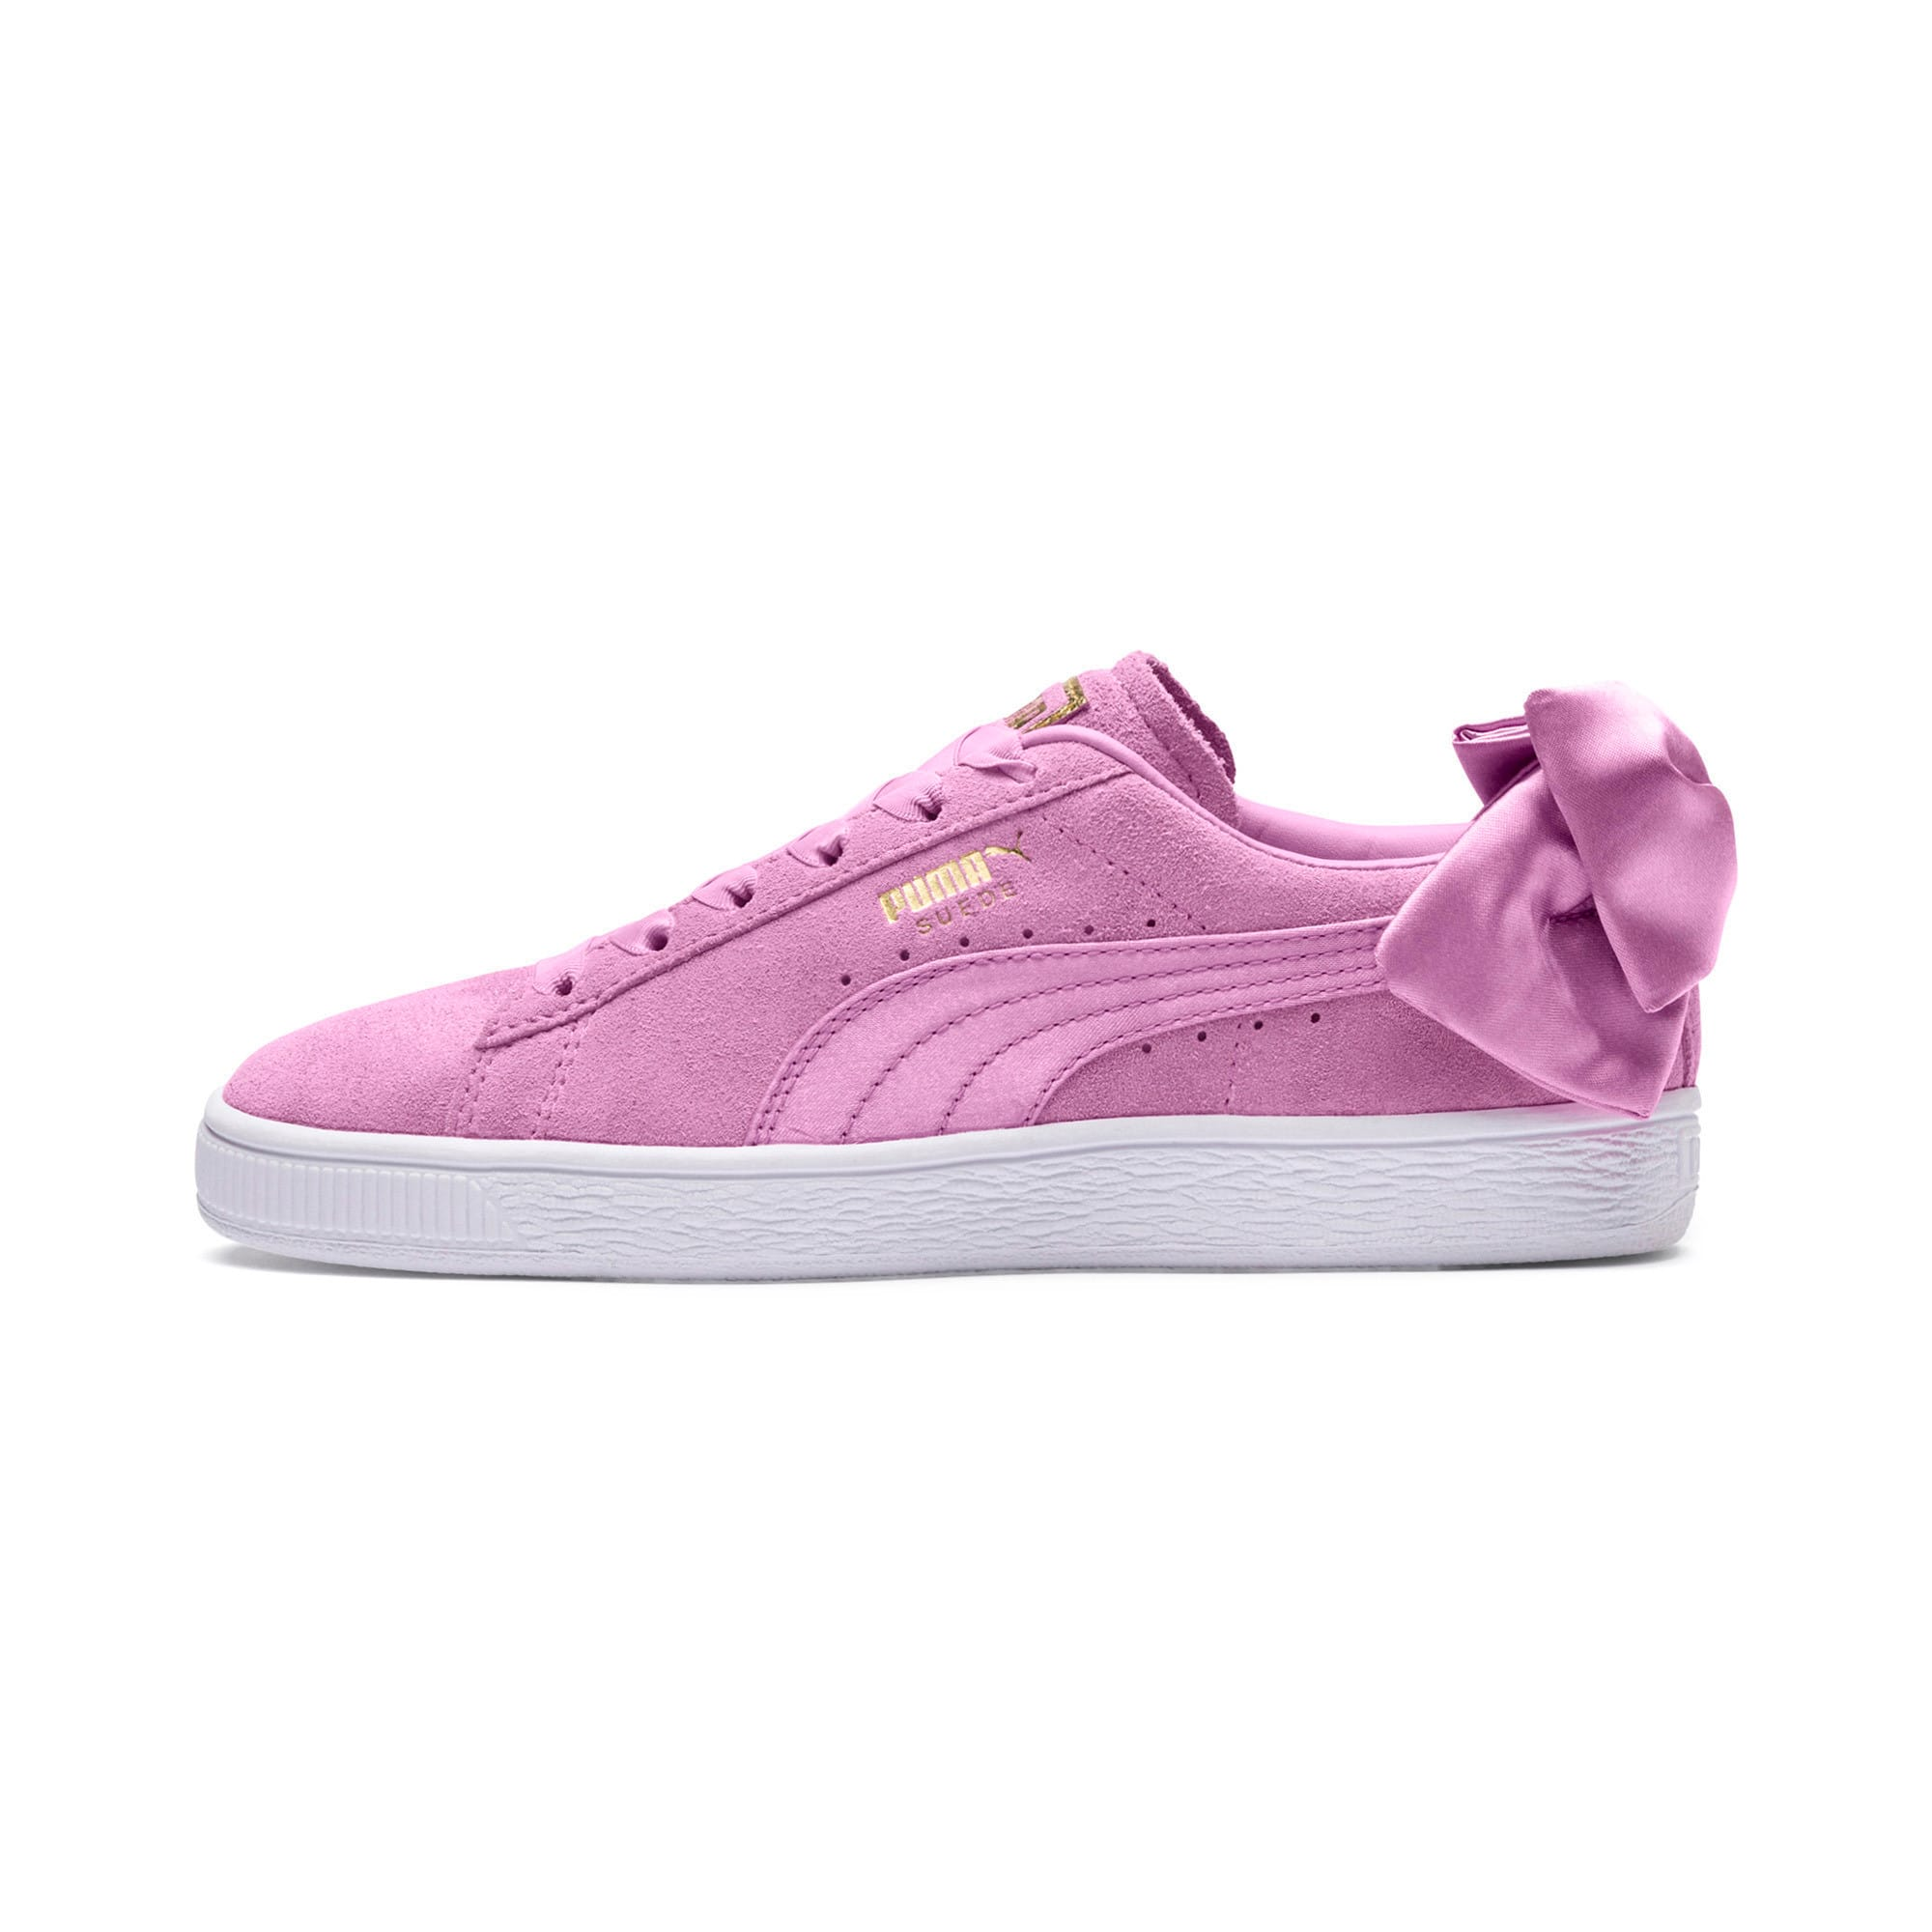 Thumbnail 1 of Suede Bow Girls' Trainers, Orchid-Orchid, medium-IND